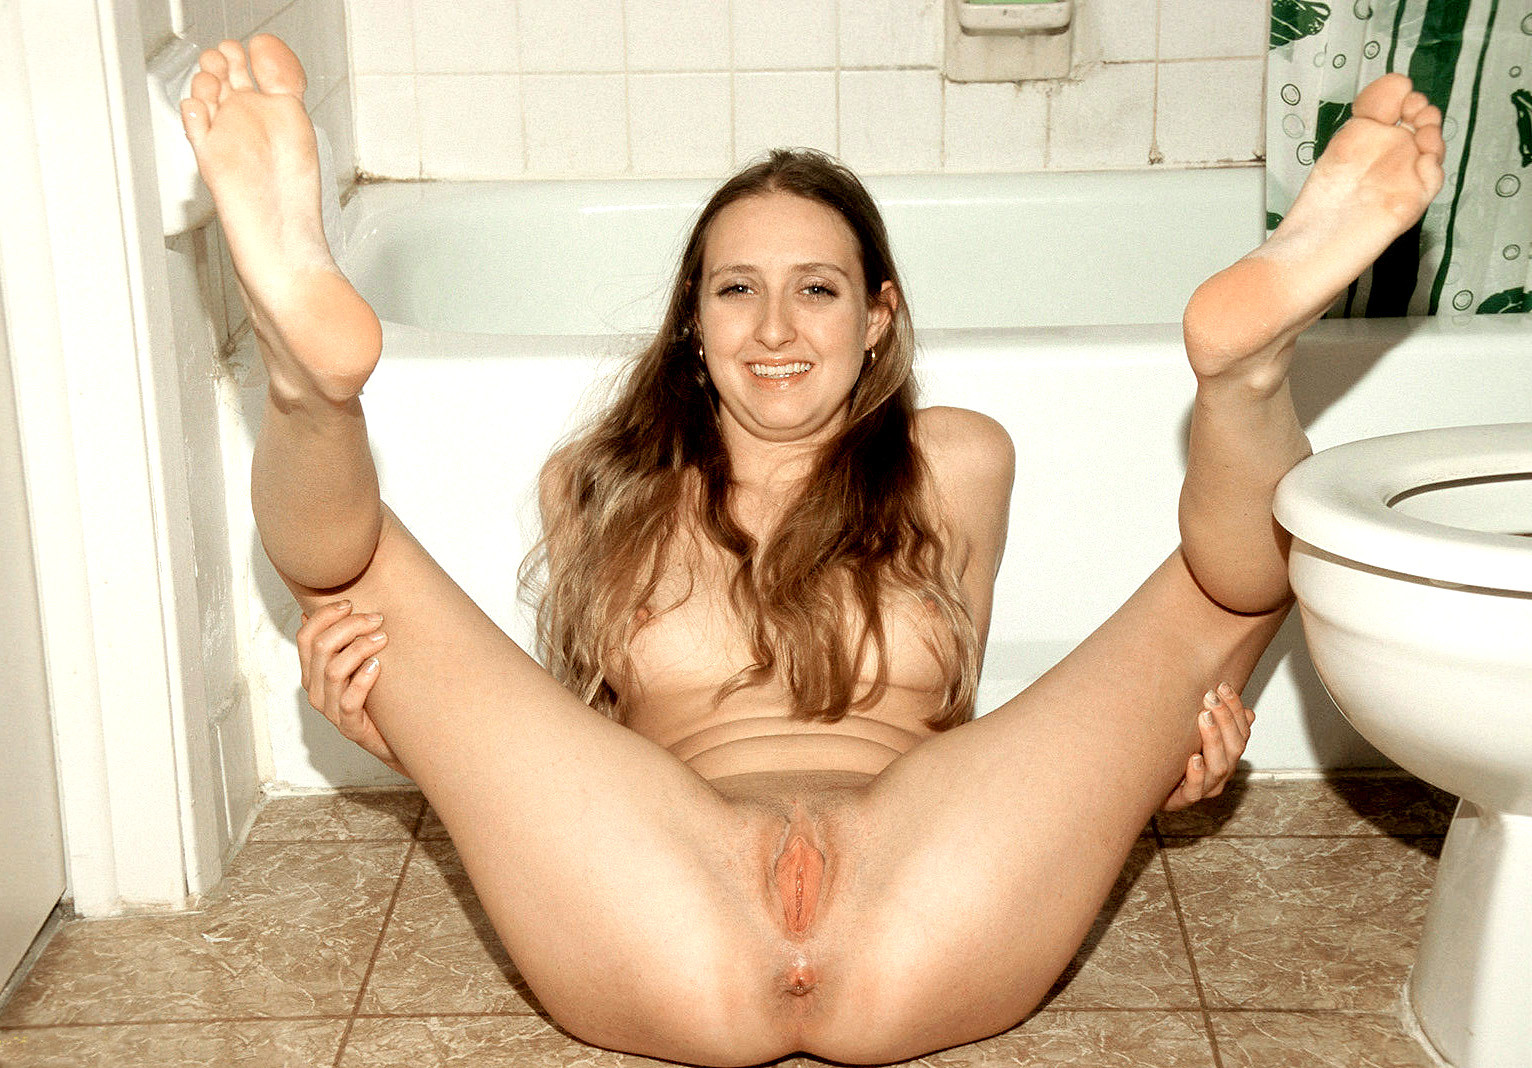 Spread eagle pussy Ex